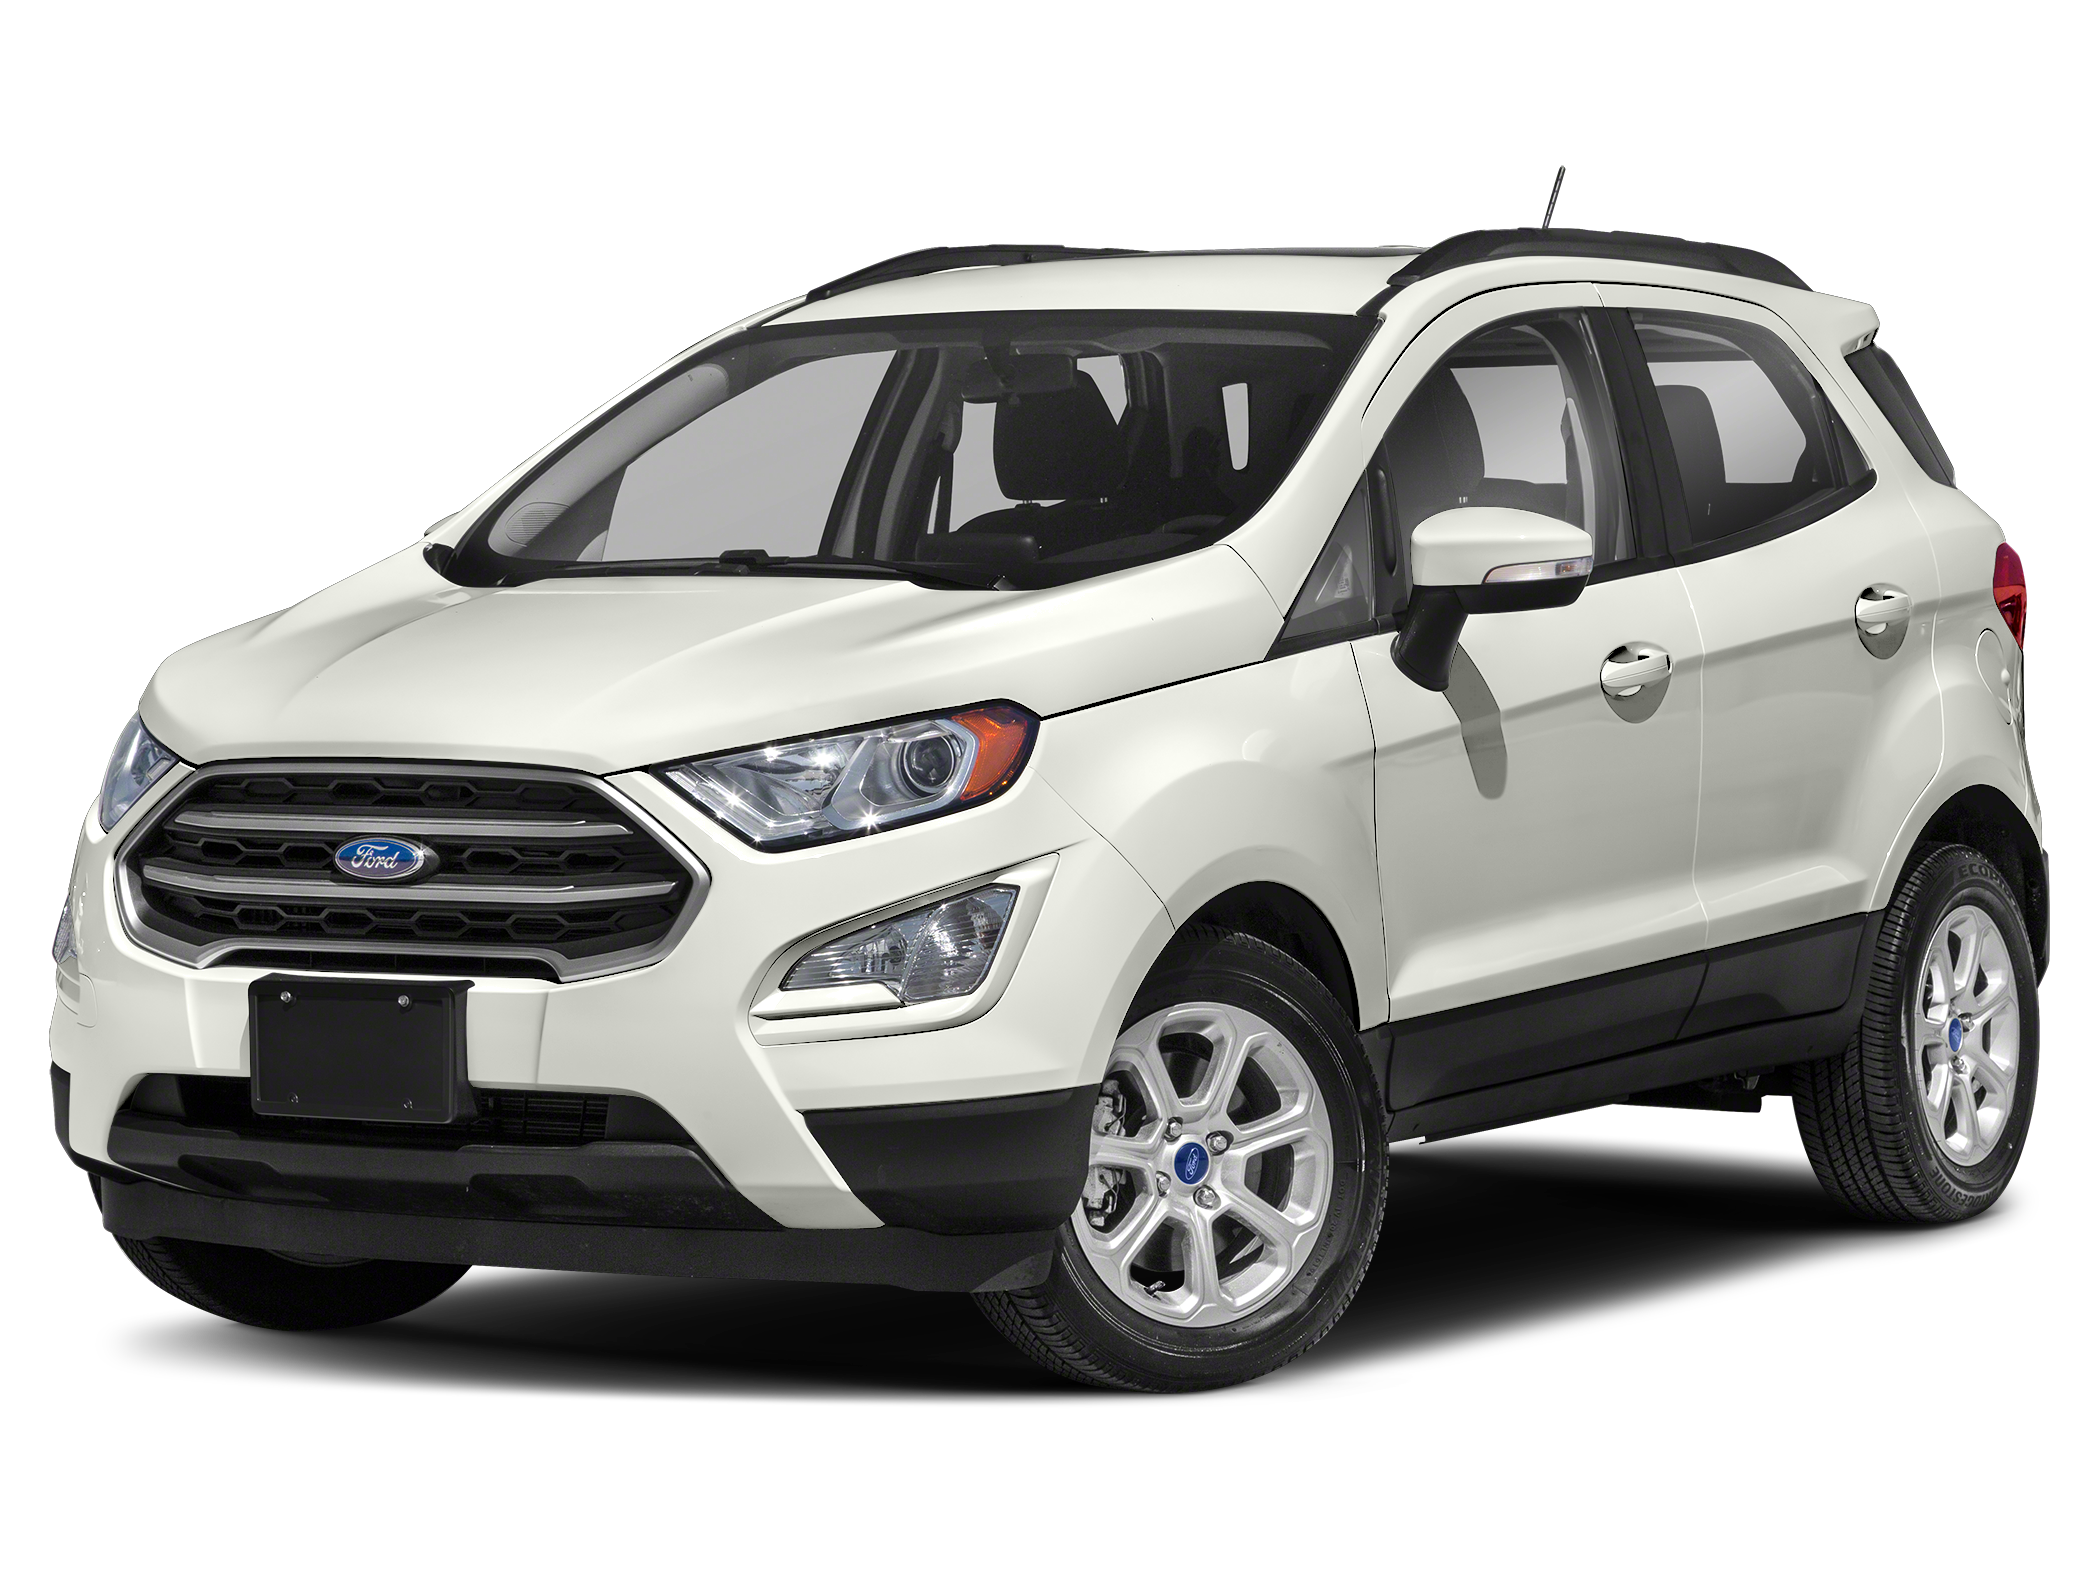 2020 Ford Ecosport Price Specs Review Terrebonne Ford Canada